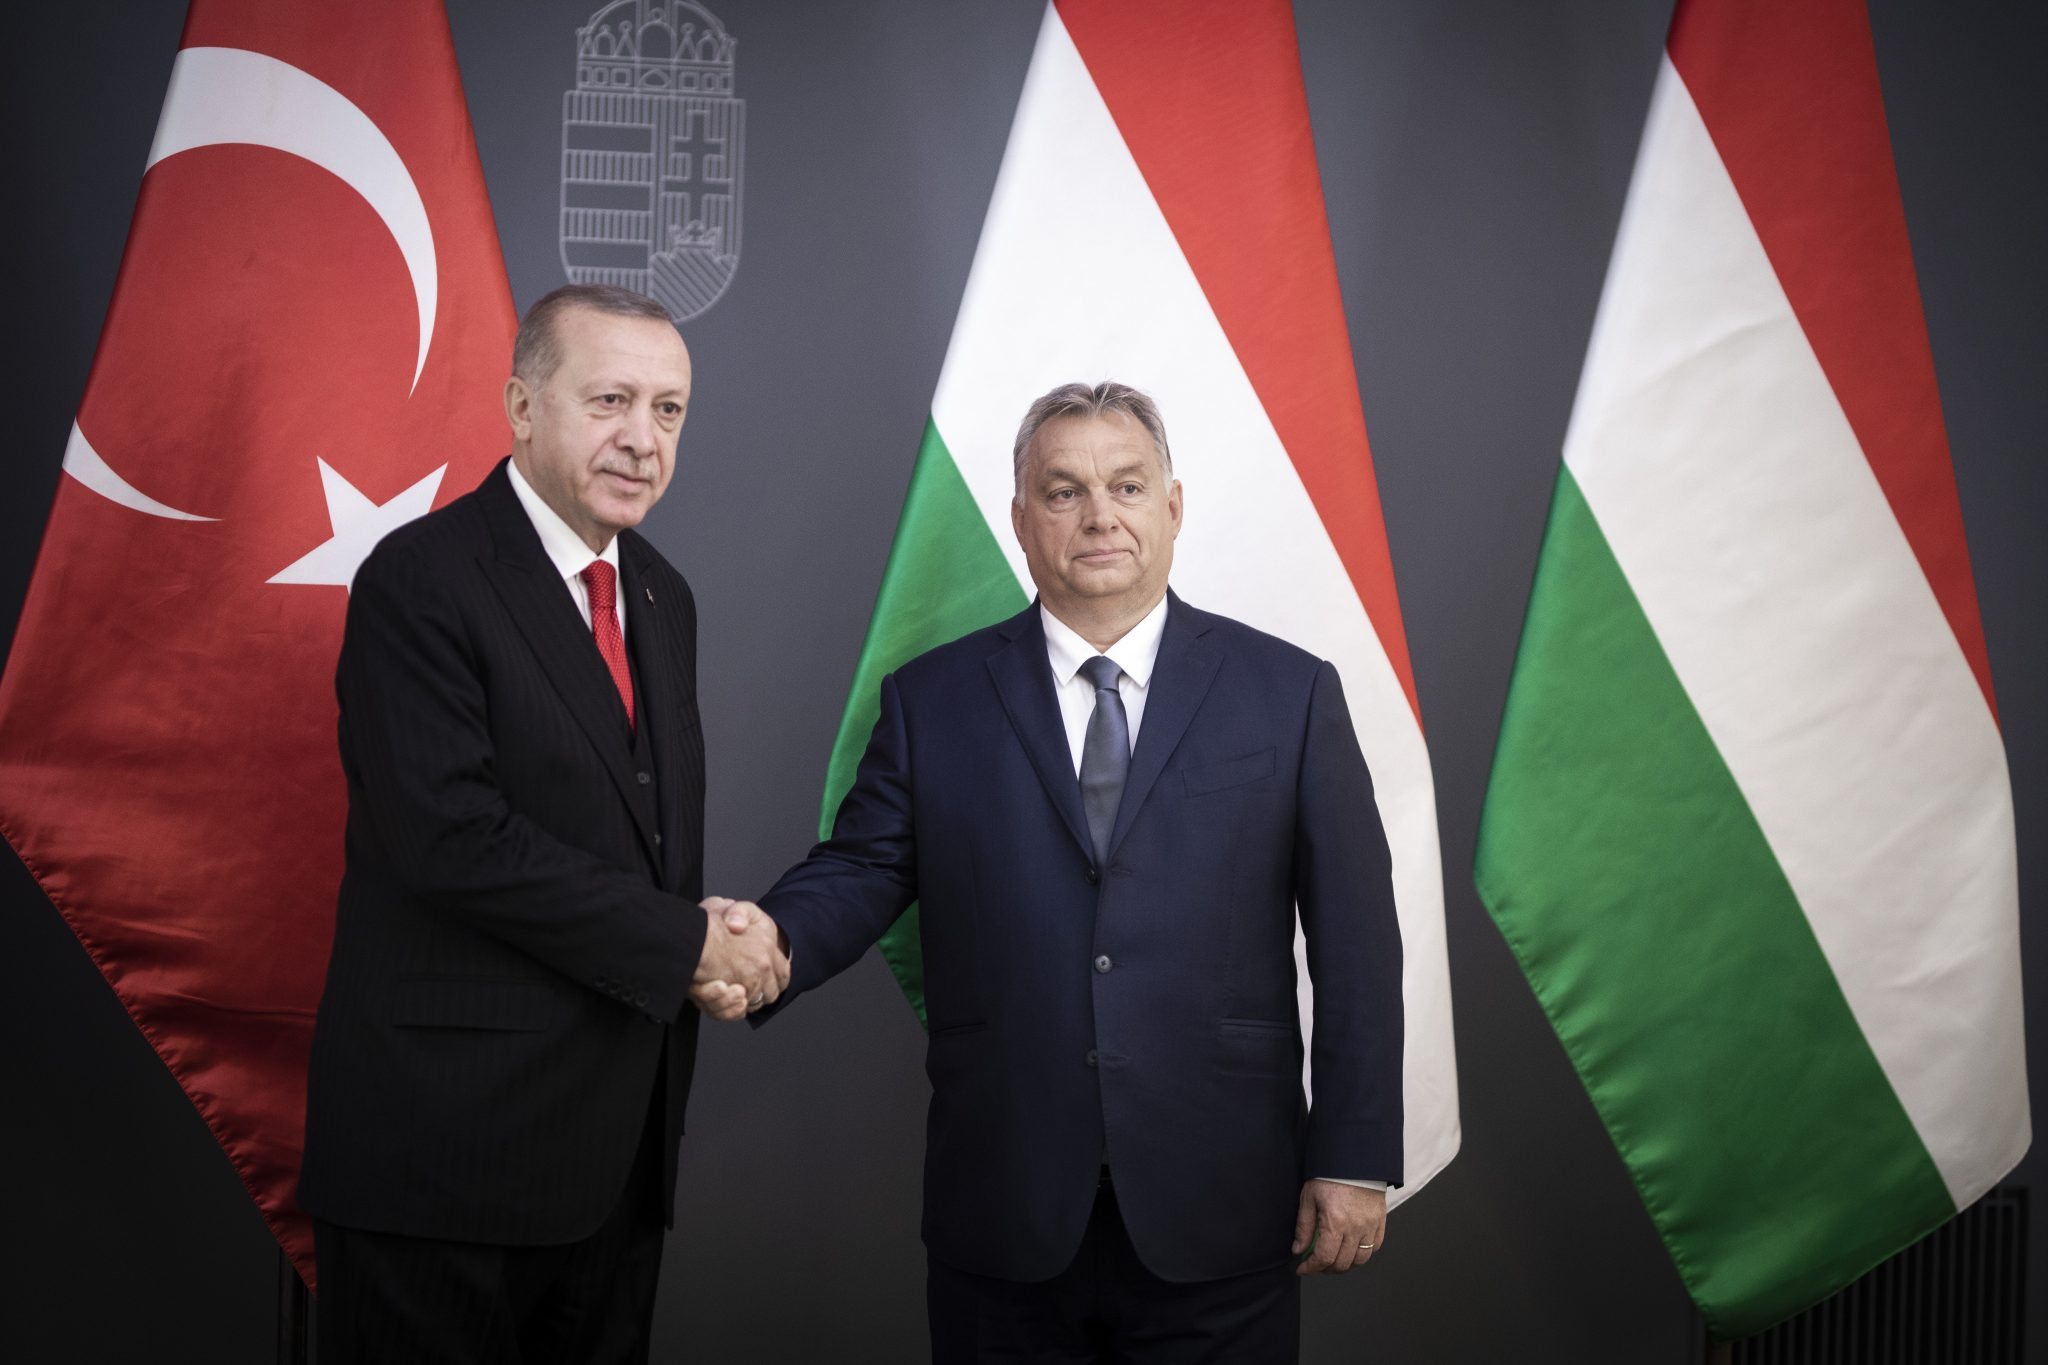 Erdogan Thanks Orbán Govt Support, Wants More Help from EU to Hold Back Migration post's picture